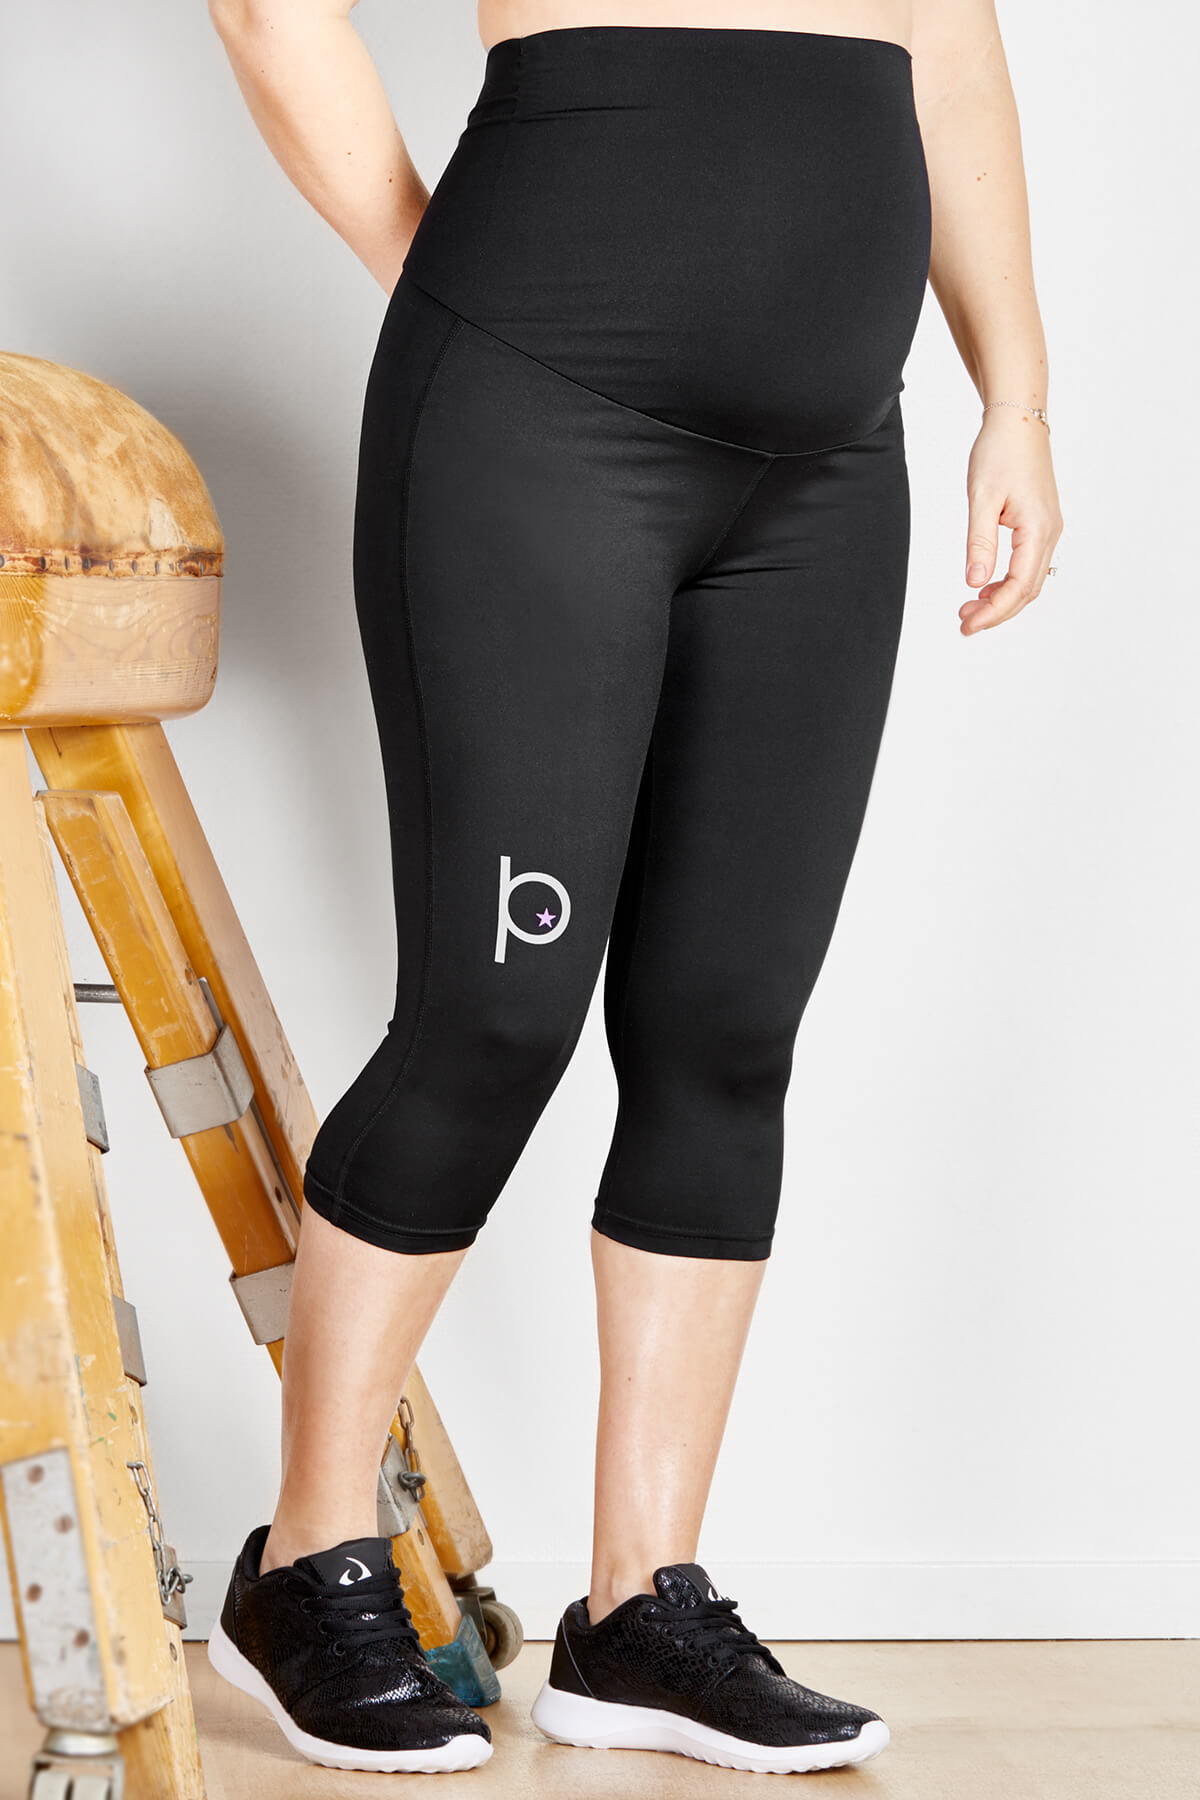 korta leggings gravid